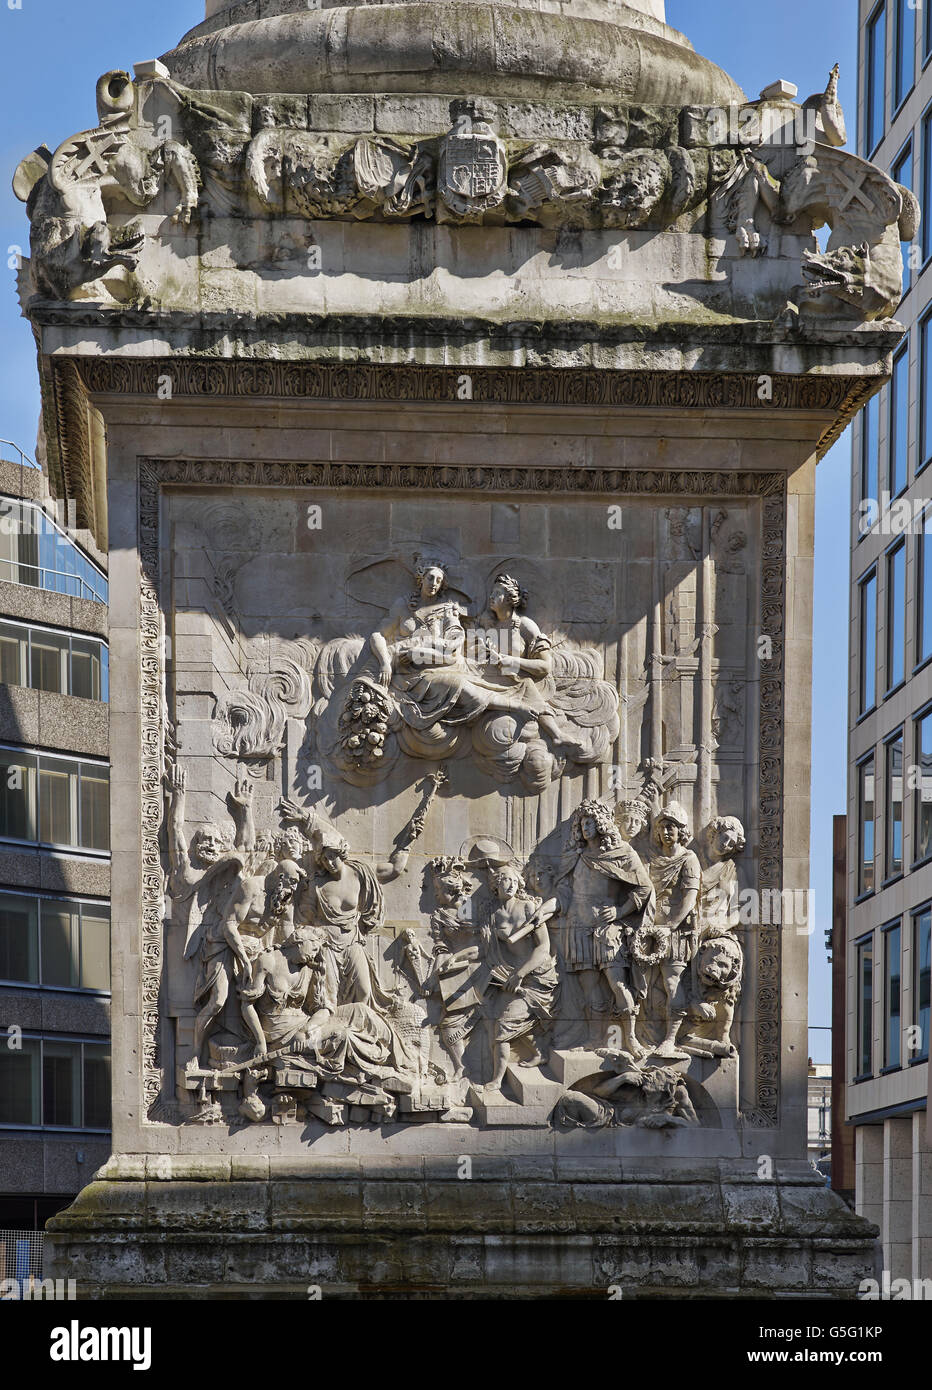 The Monument to the Great Fire of London, 1670-1675. Plaque on west front of the base. - Stock Image